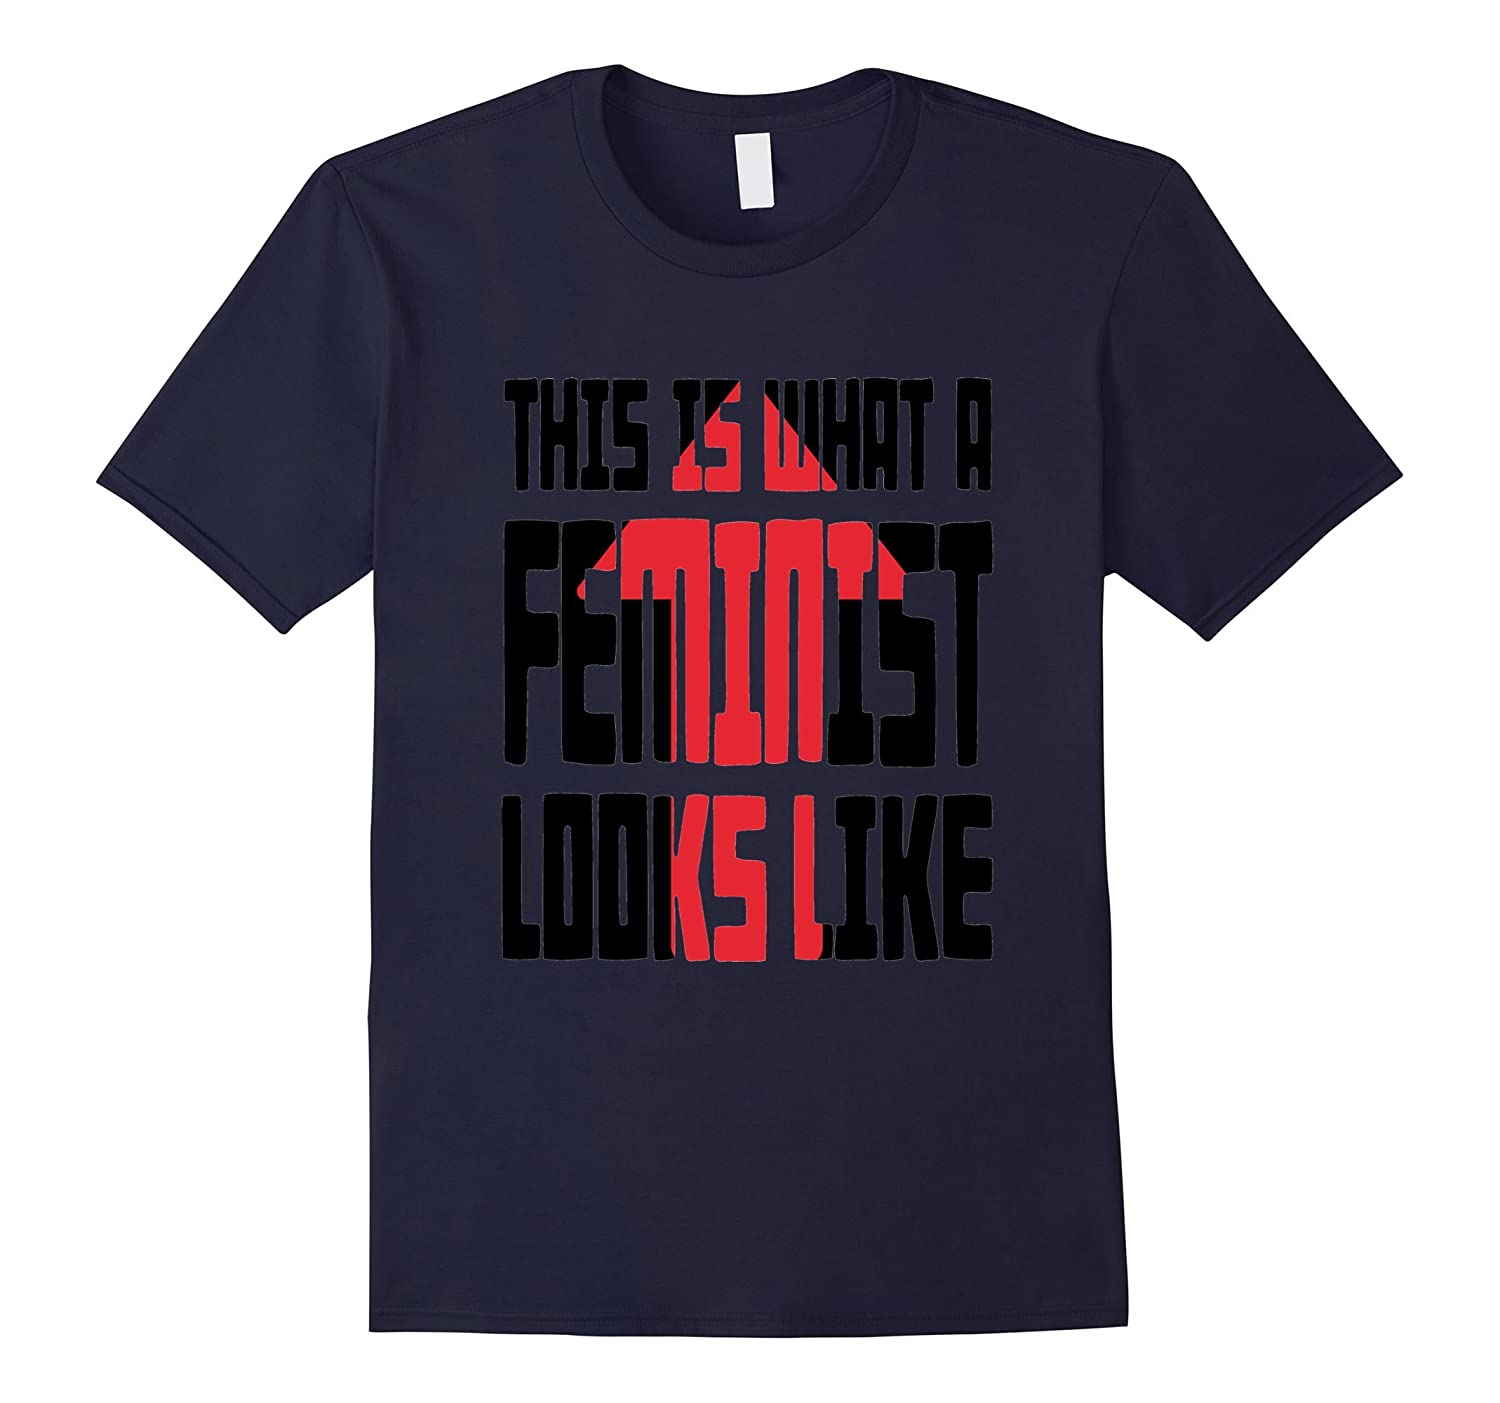 This is What a Feminist Looks like girls t shirt gift idea